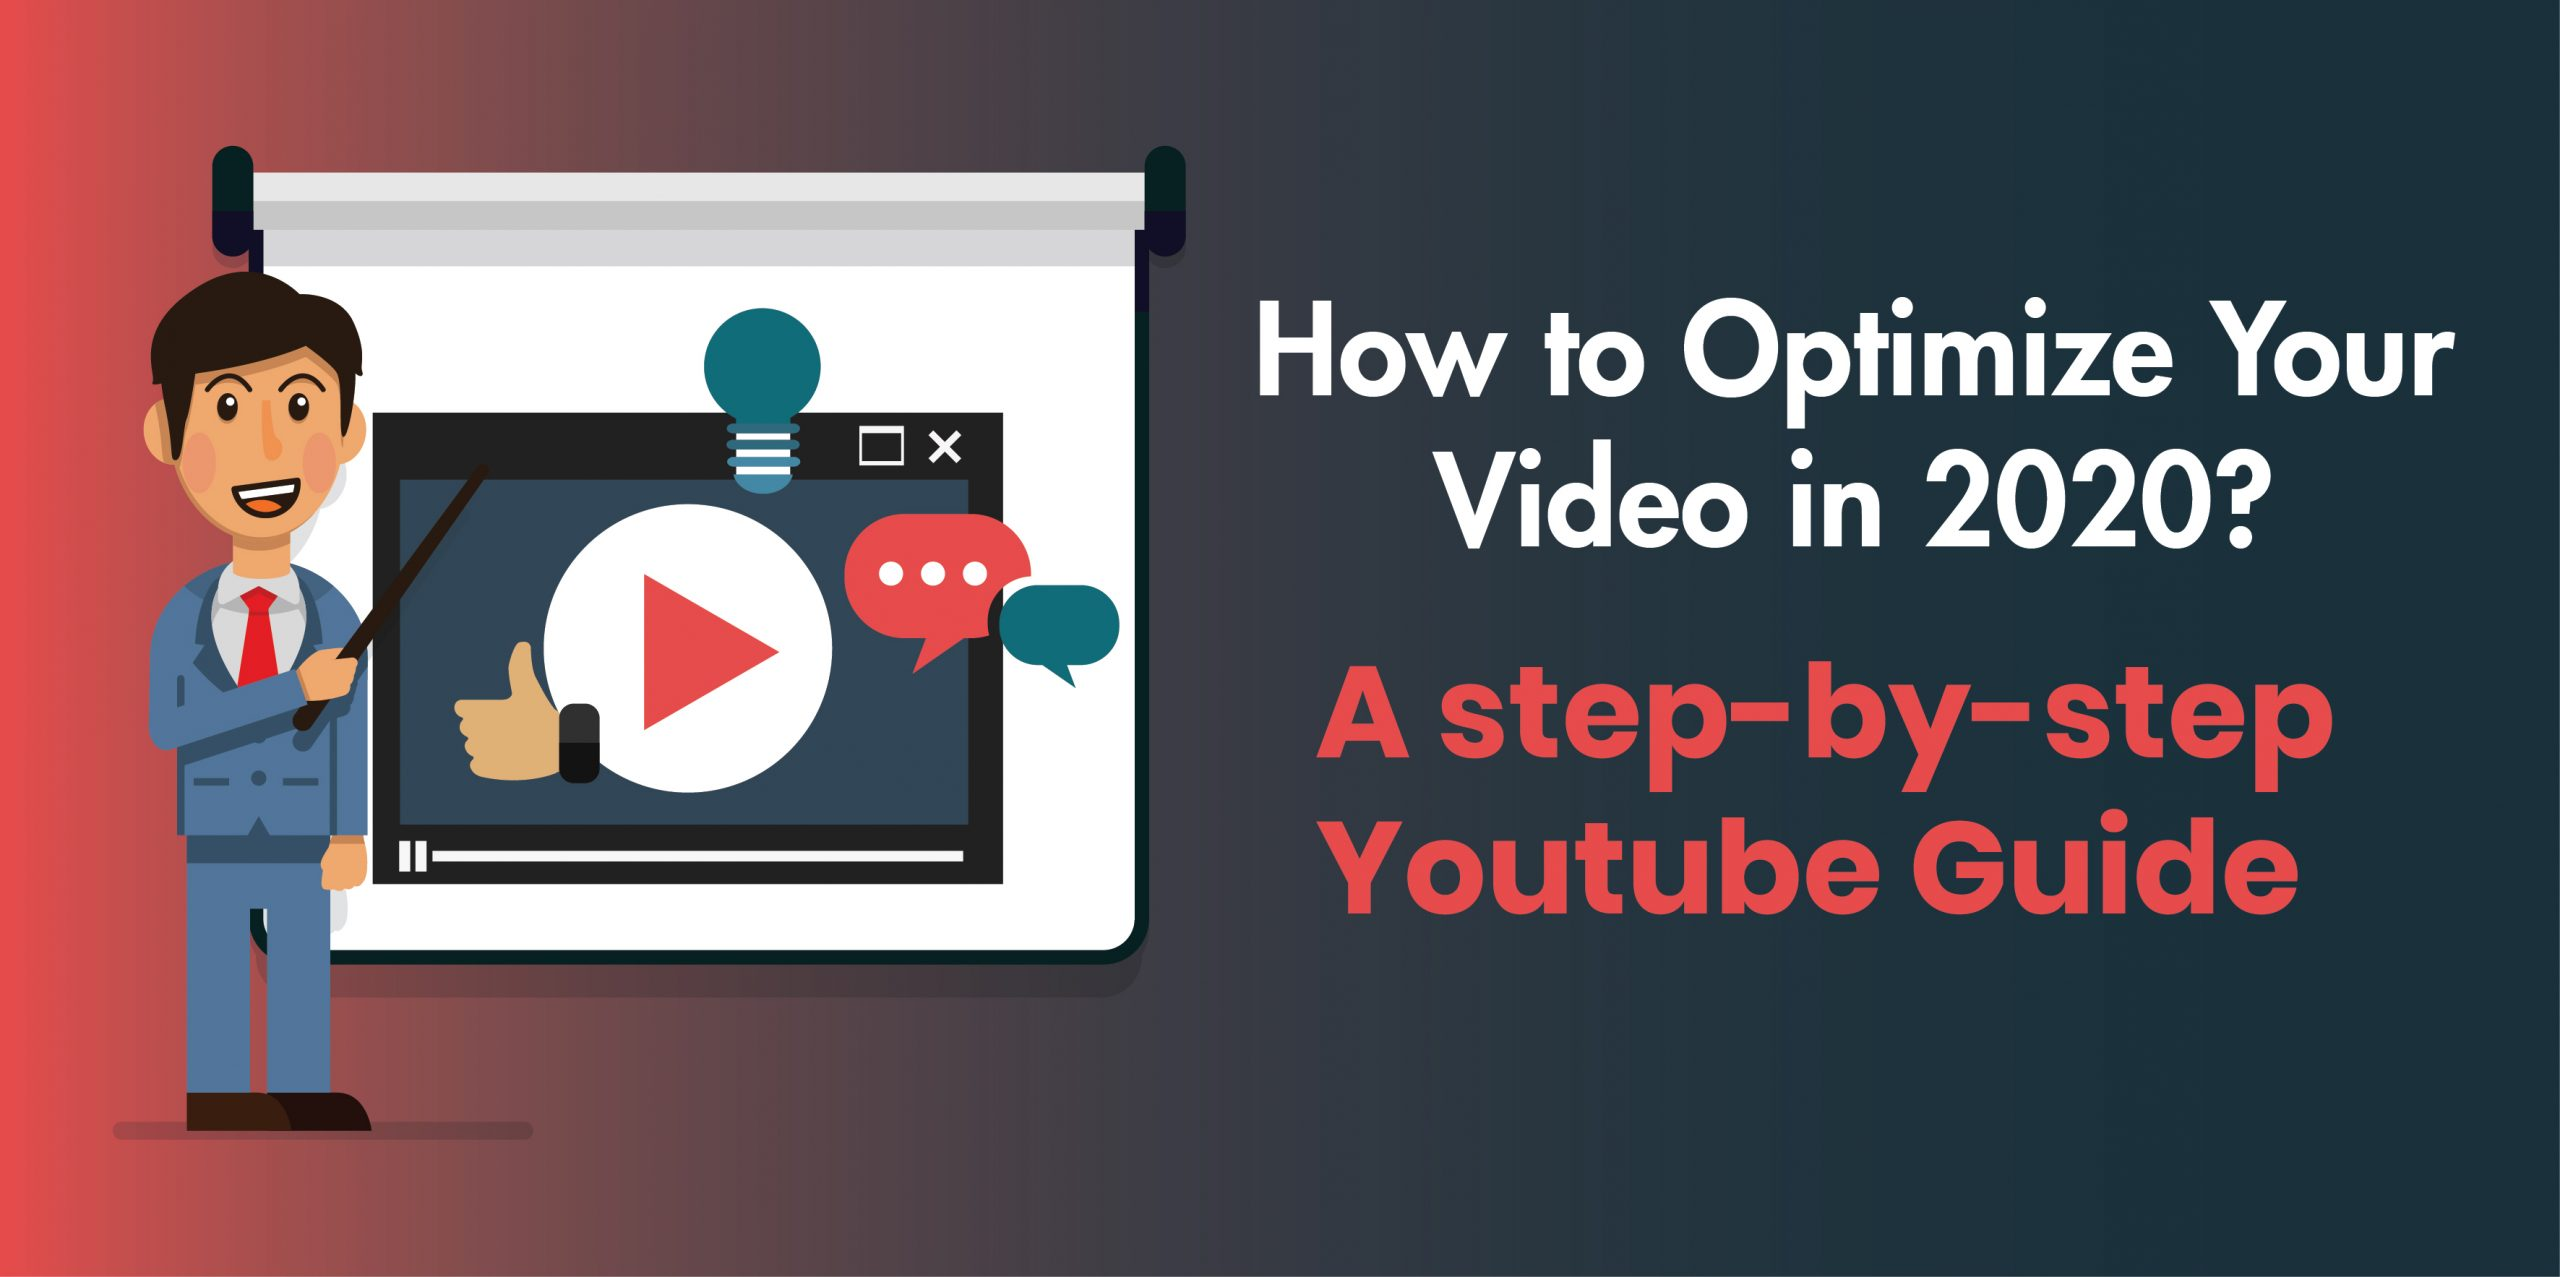 How To Optimize YouTube Video In 2020? A Step-By-Step YouTube Guide